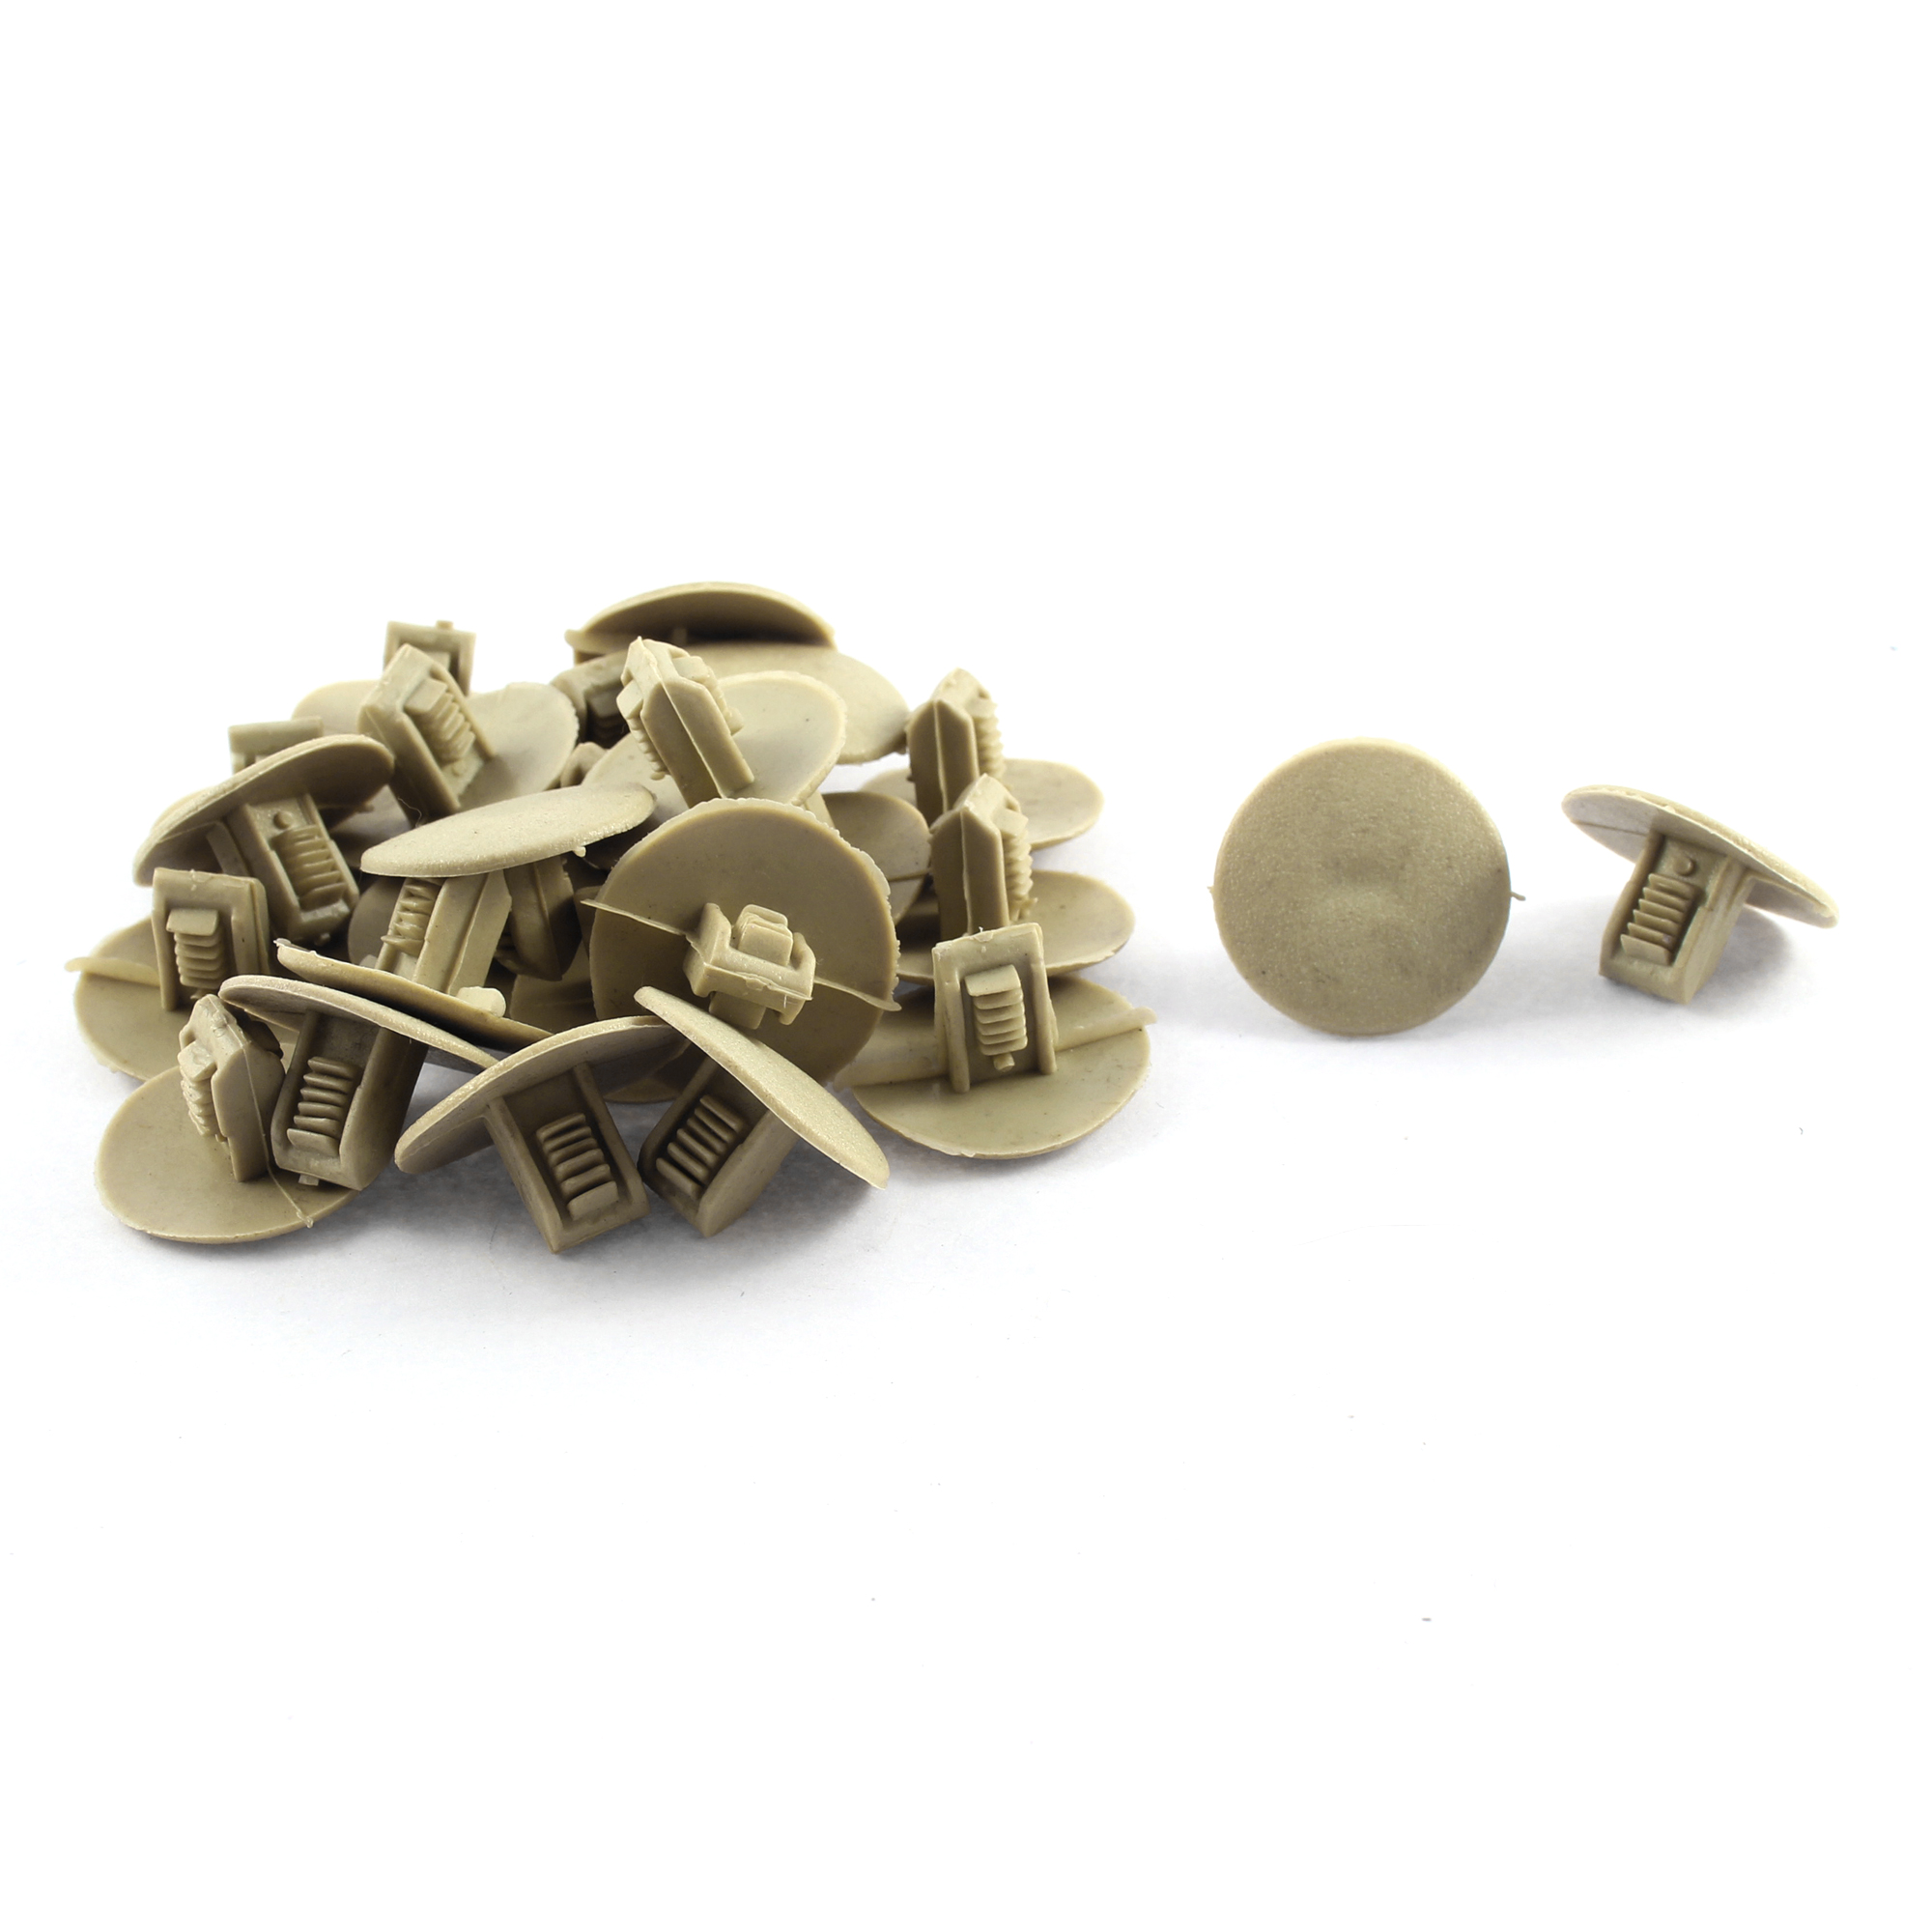 25x Car Plastic Push in Fastener Rivets Clips Beige